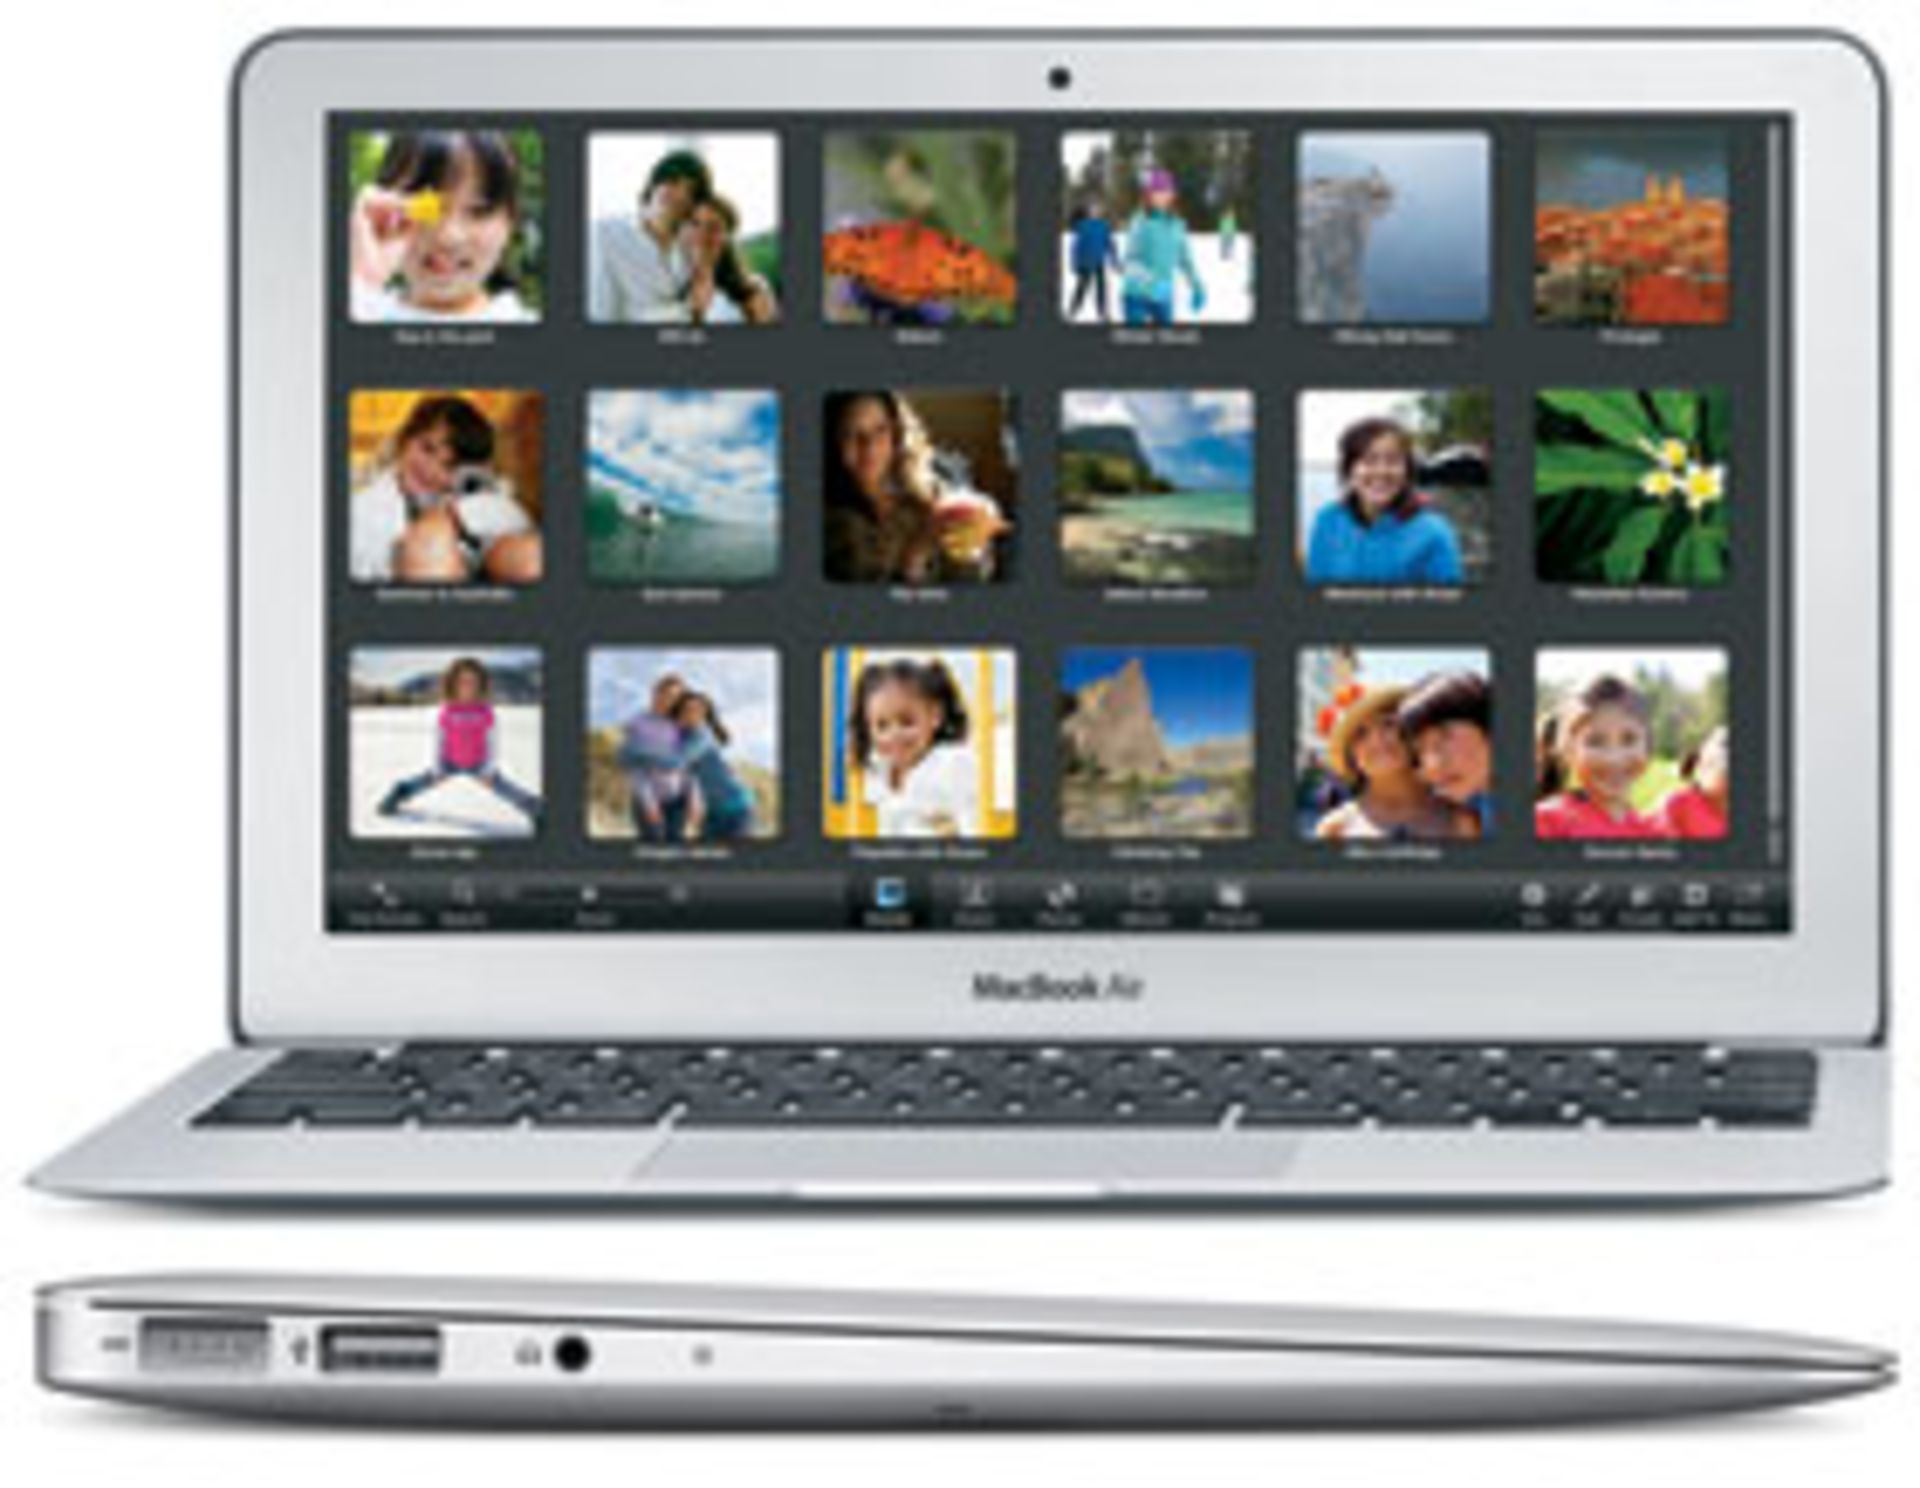 Lot 60016 - V Grade B Macbook Air 11.6 Inch Core 2 Duo - 64GB SSD - A1370 - Available Approx 7 Working Days